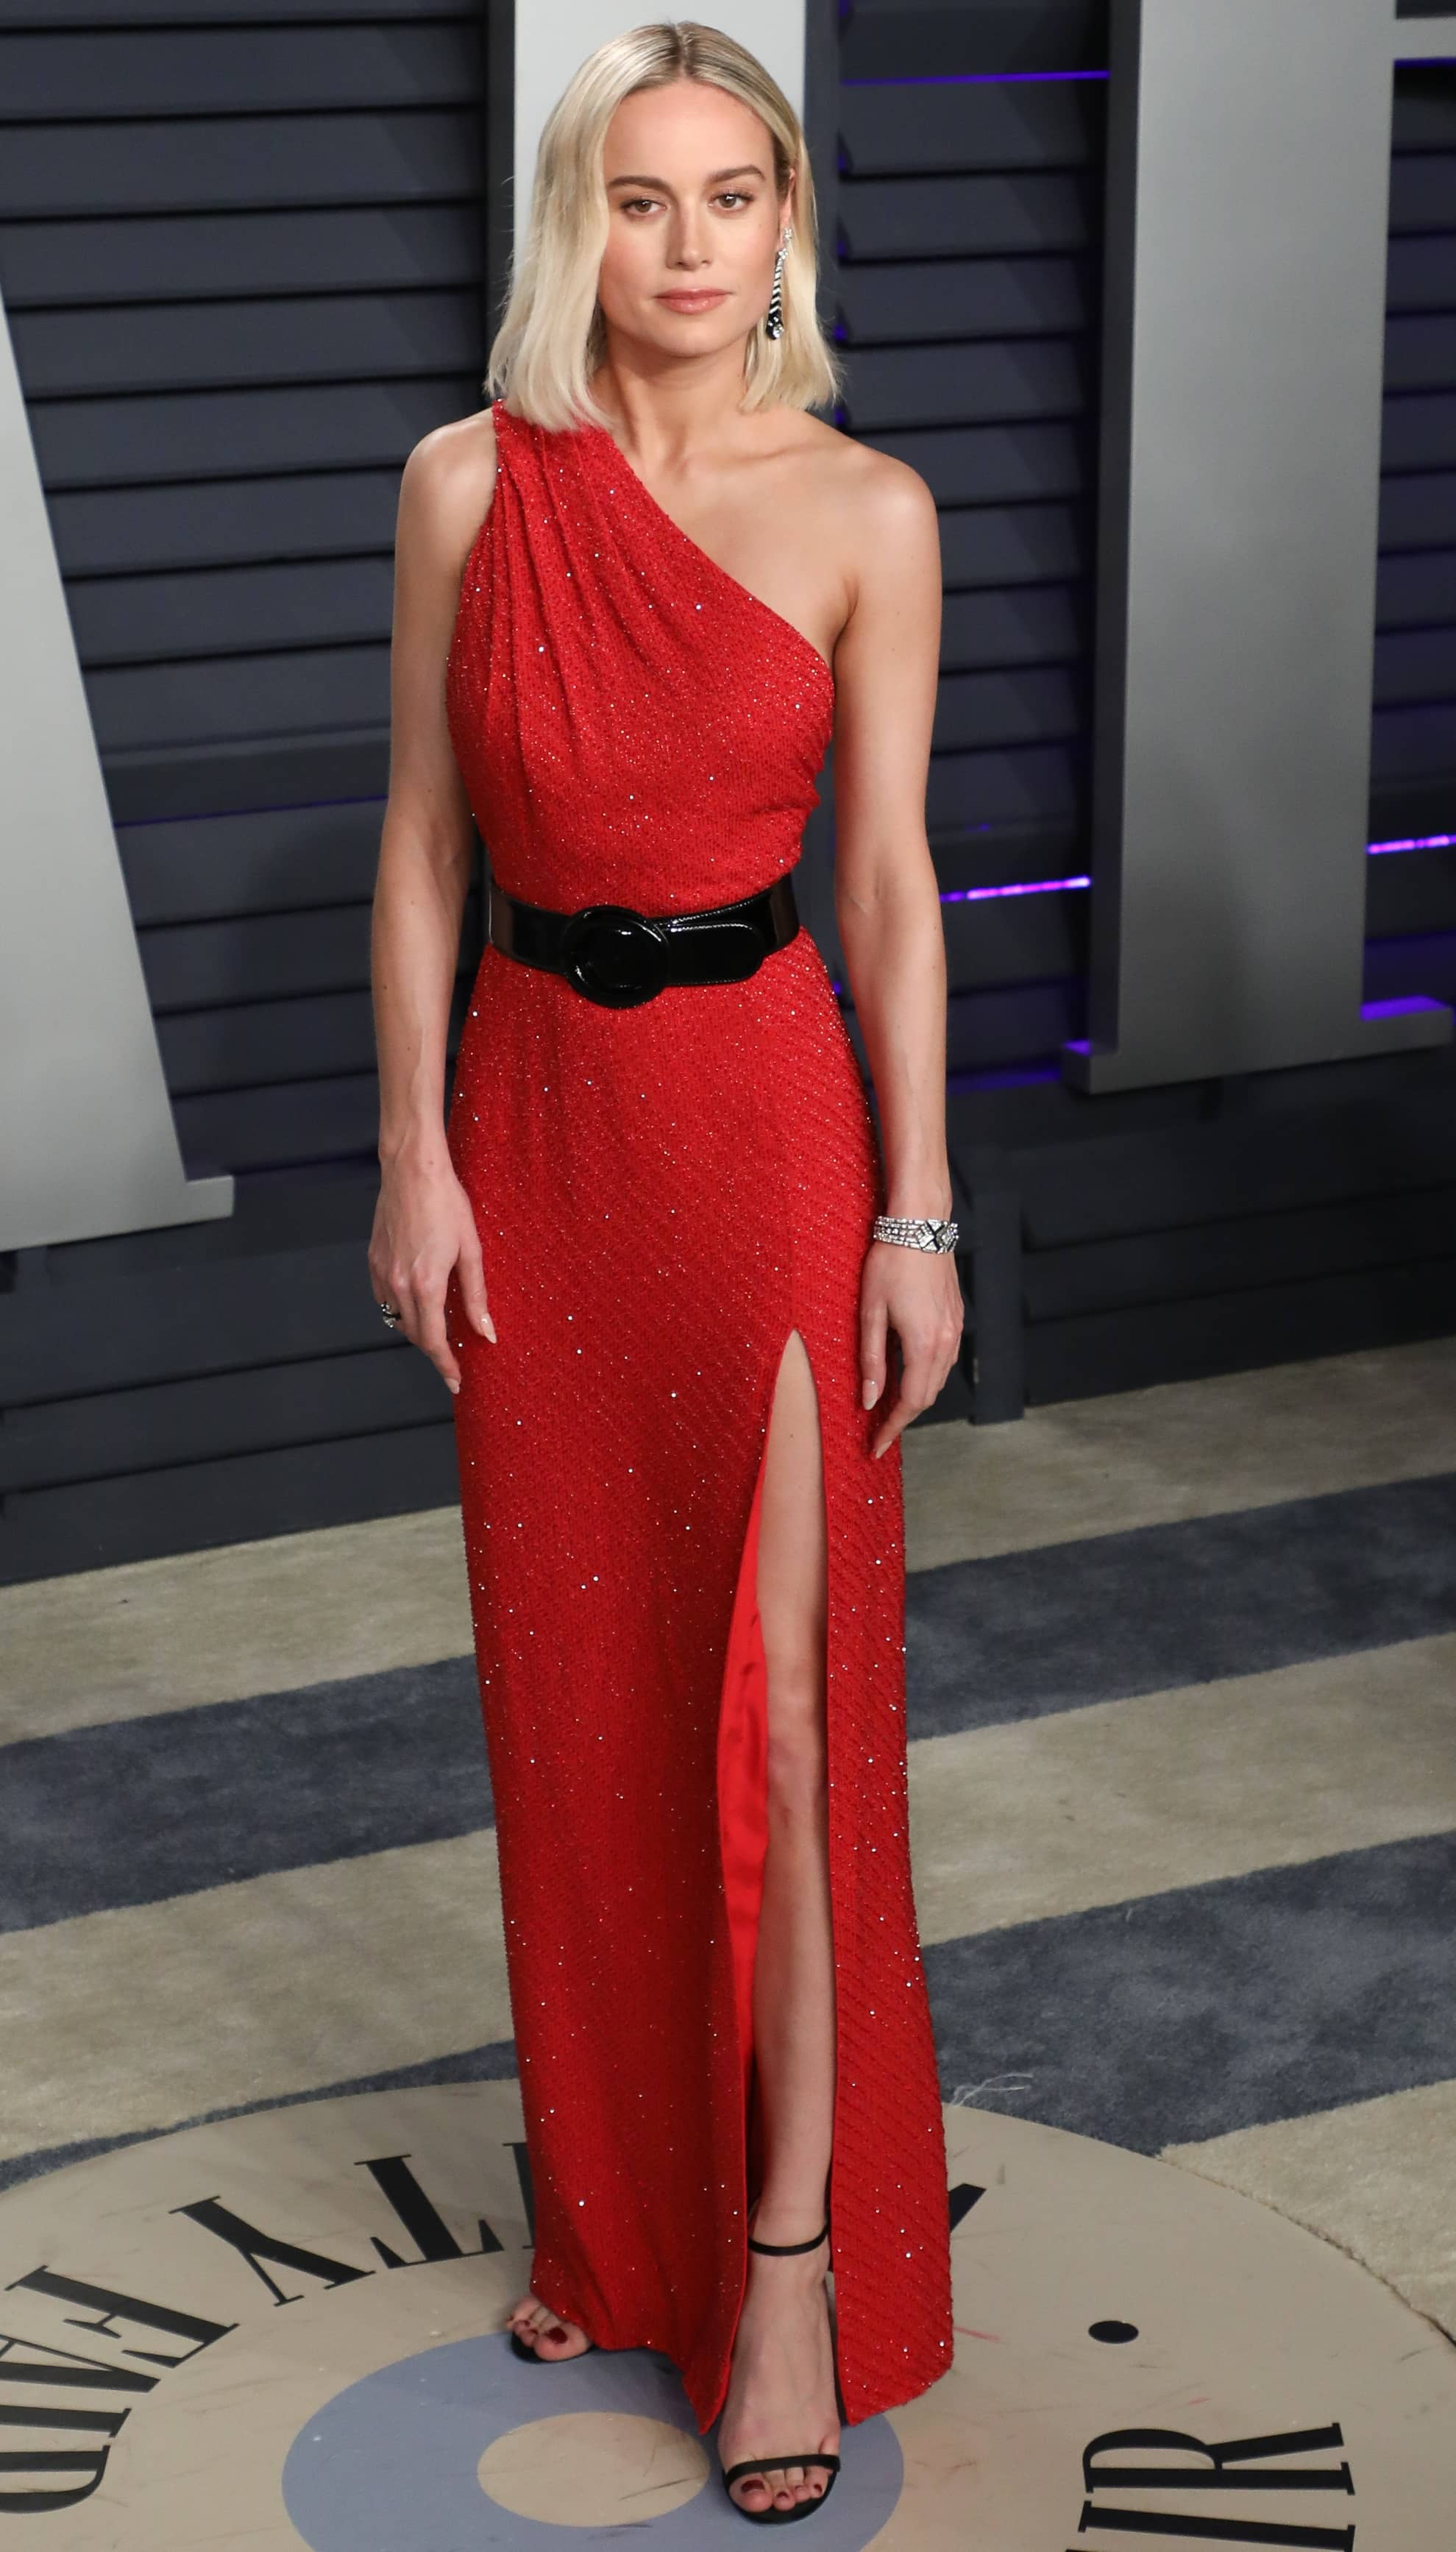 Brie Larson's red one-shoulder bead-embroidered dress at the 2019 Vanity Fair Oscar Party at the Wallis Annenberg Center for the Performing Arts in Beverly Hills, California, on February 24, 2019